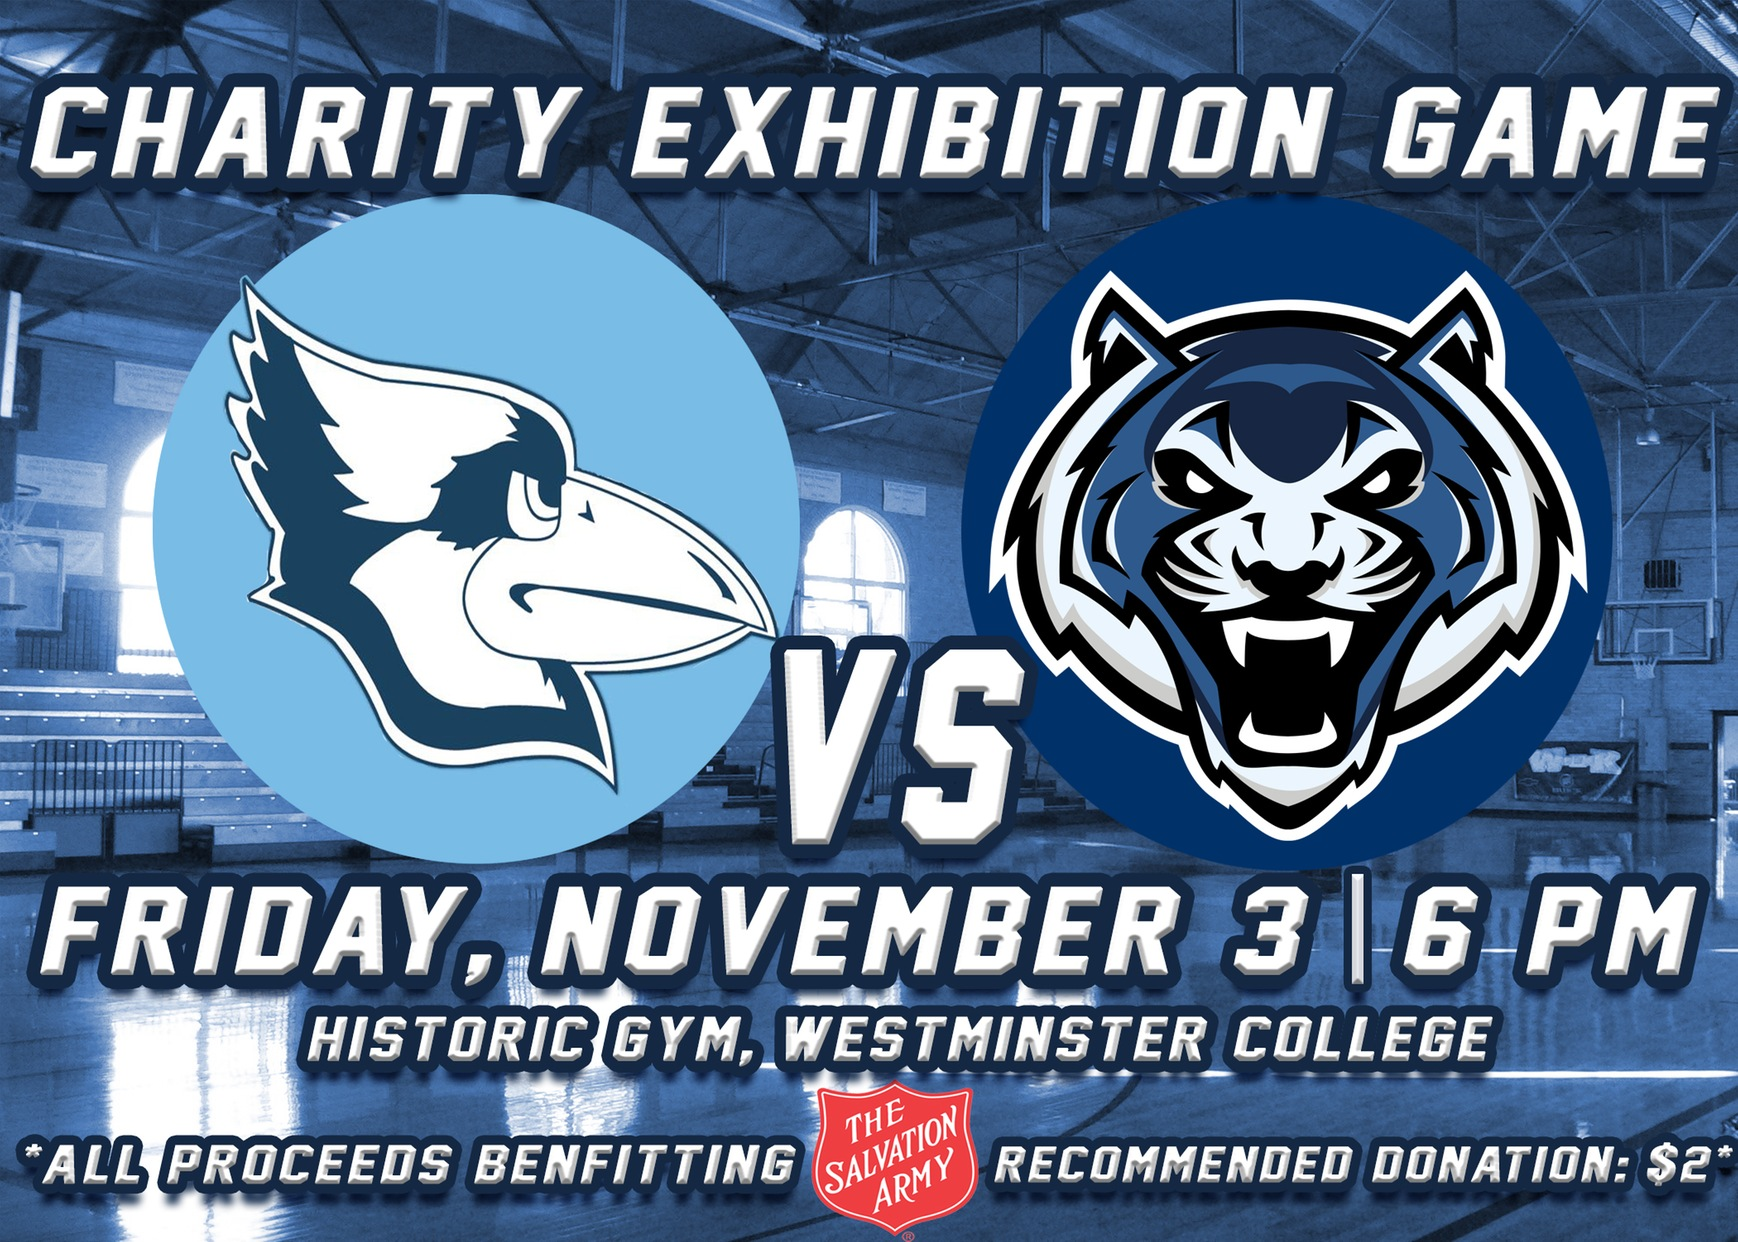 Westminster Women's Basketball to Face Lincoln in Charity Exhibition Game